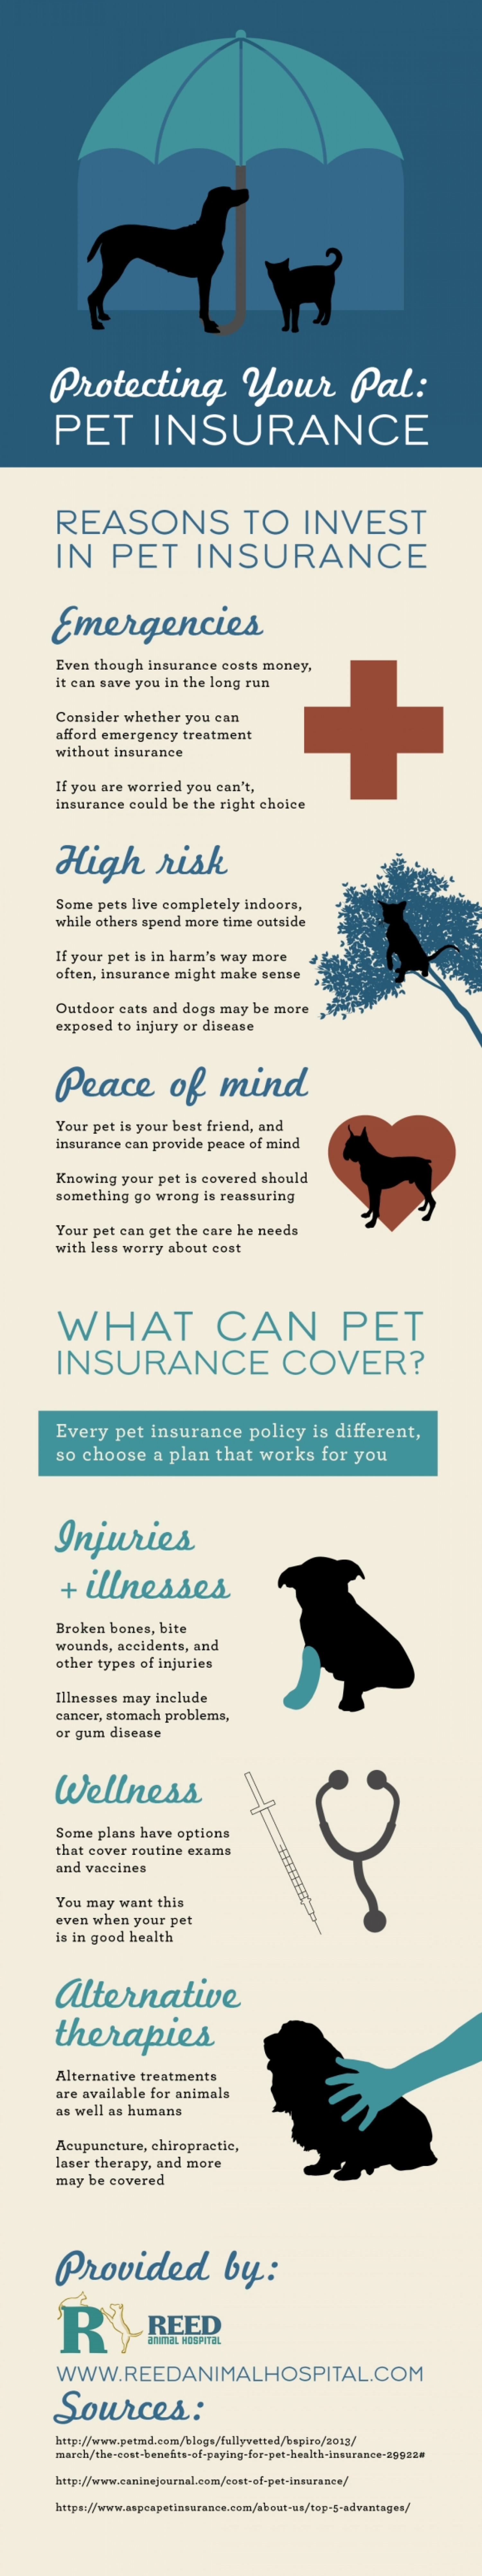 Protecting Your Pal: Pet Insurance  Infographic